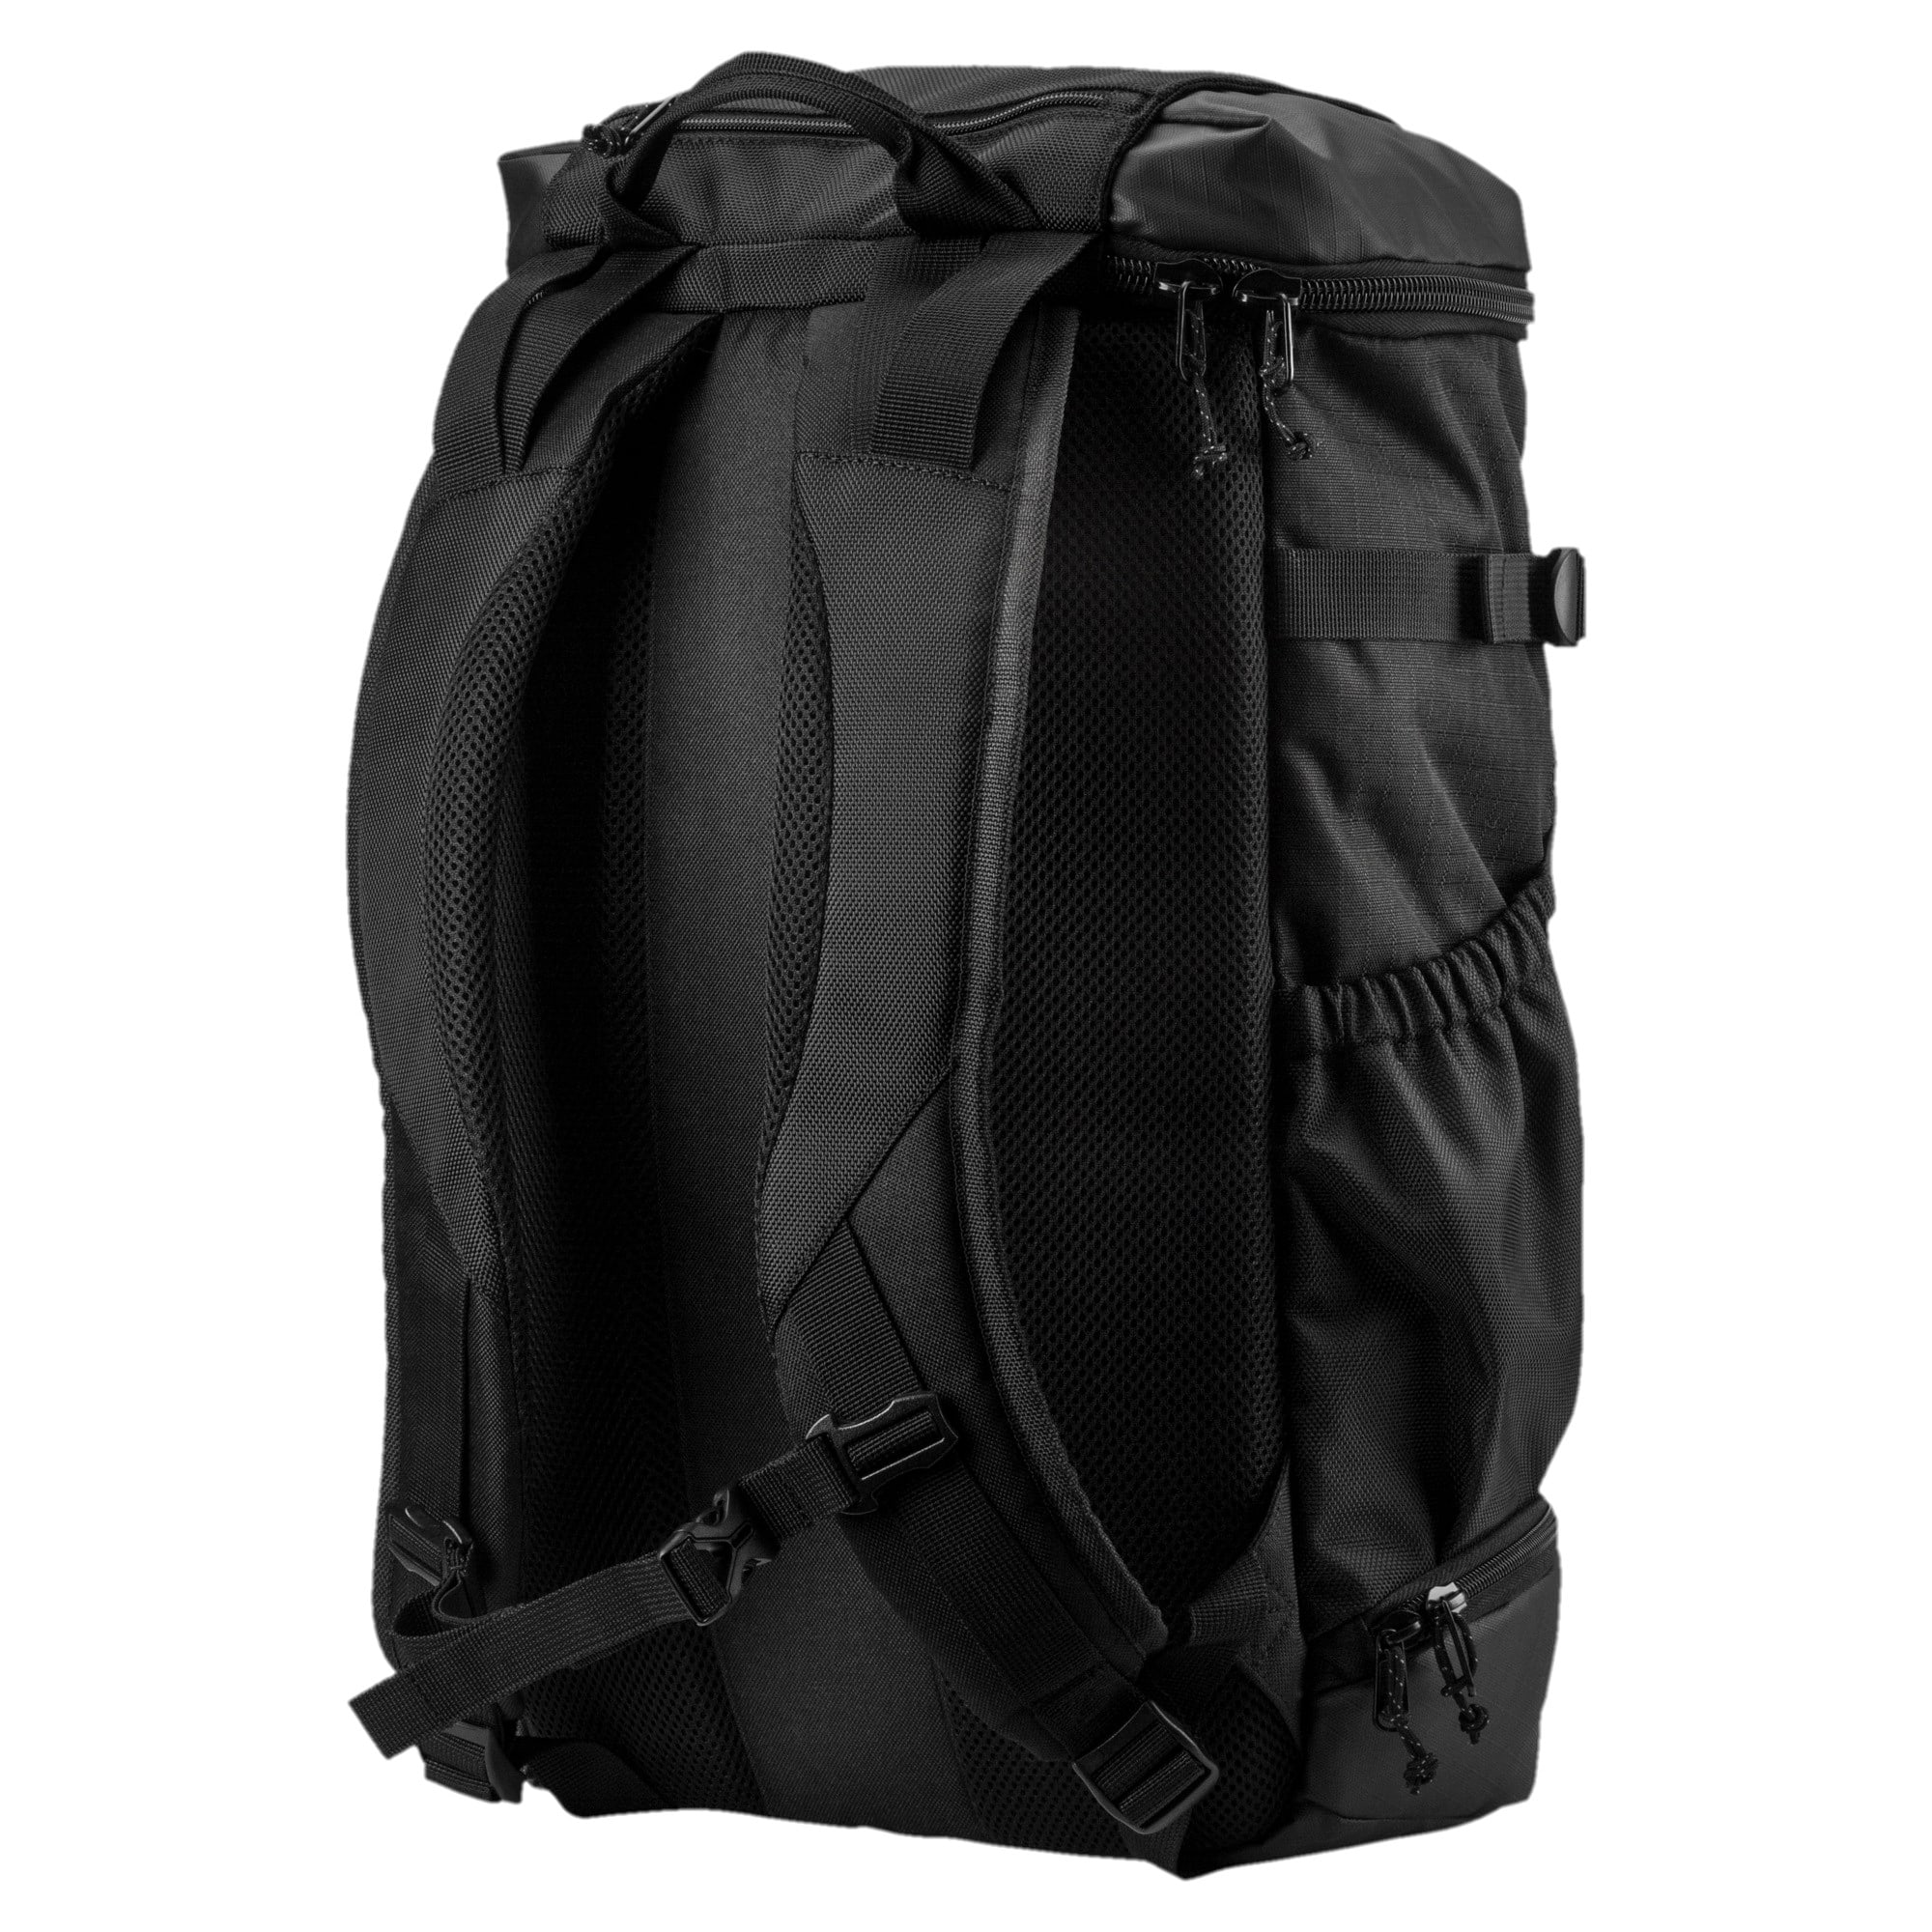 Thumbnail 2 of Energy Backpack, Puma Black, medium-IND